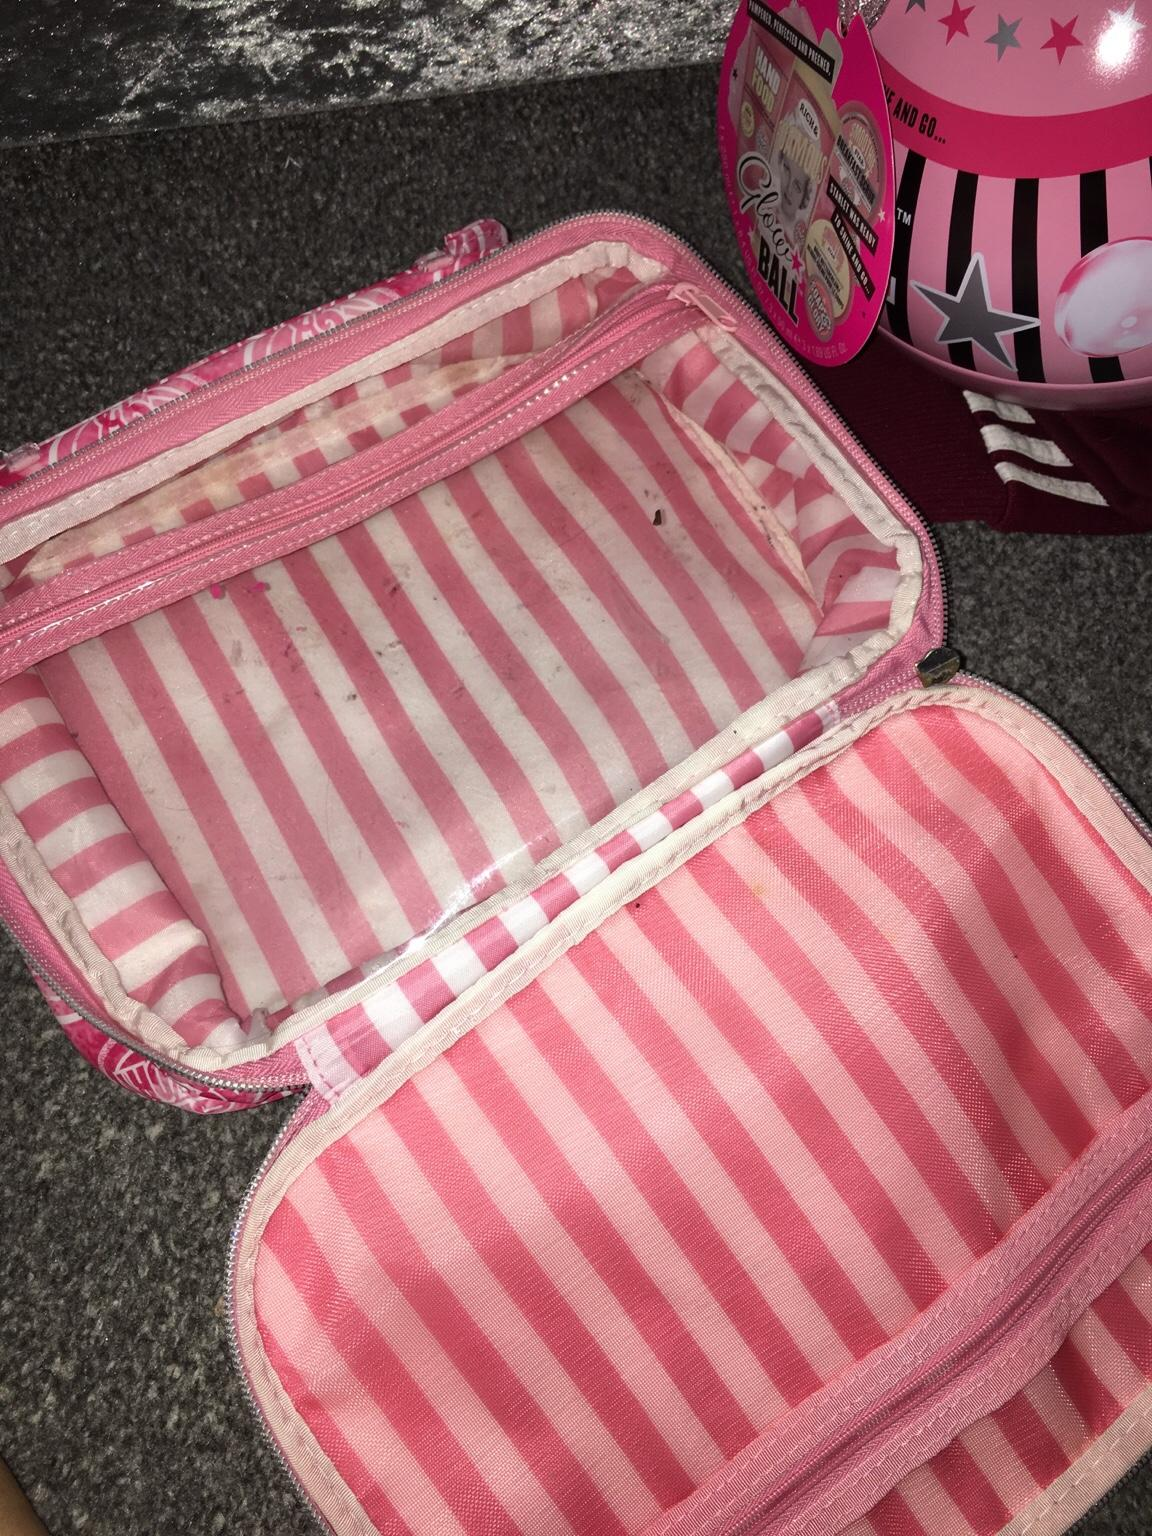 Soap And Glory Bag In Wv14 Dudley For